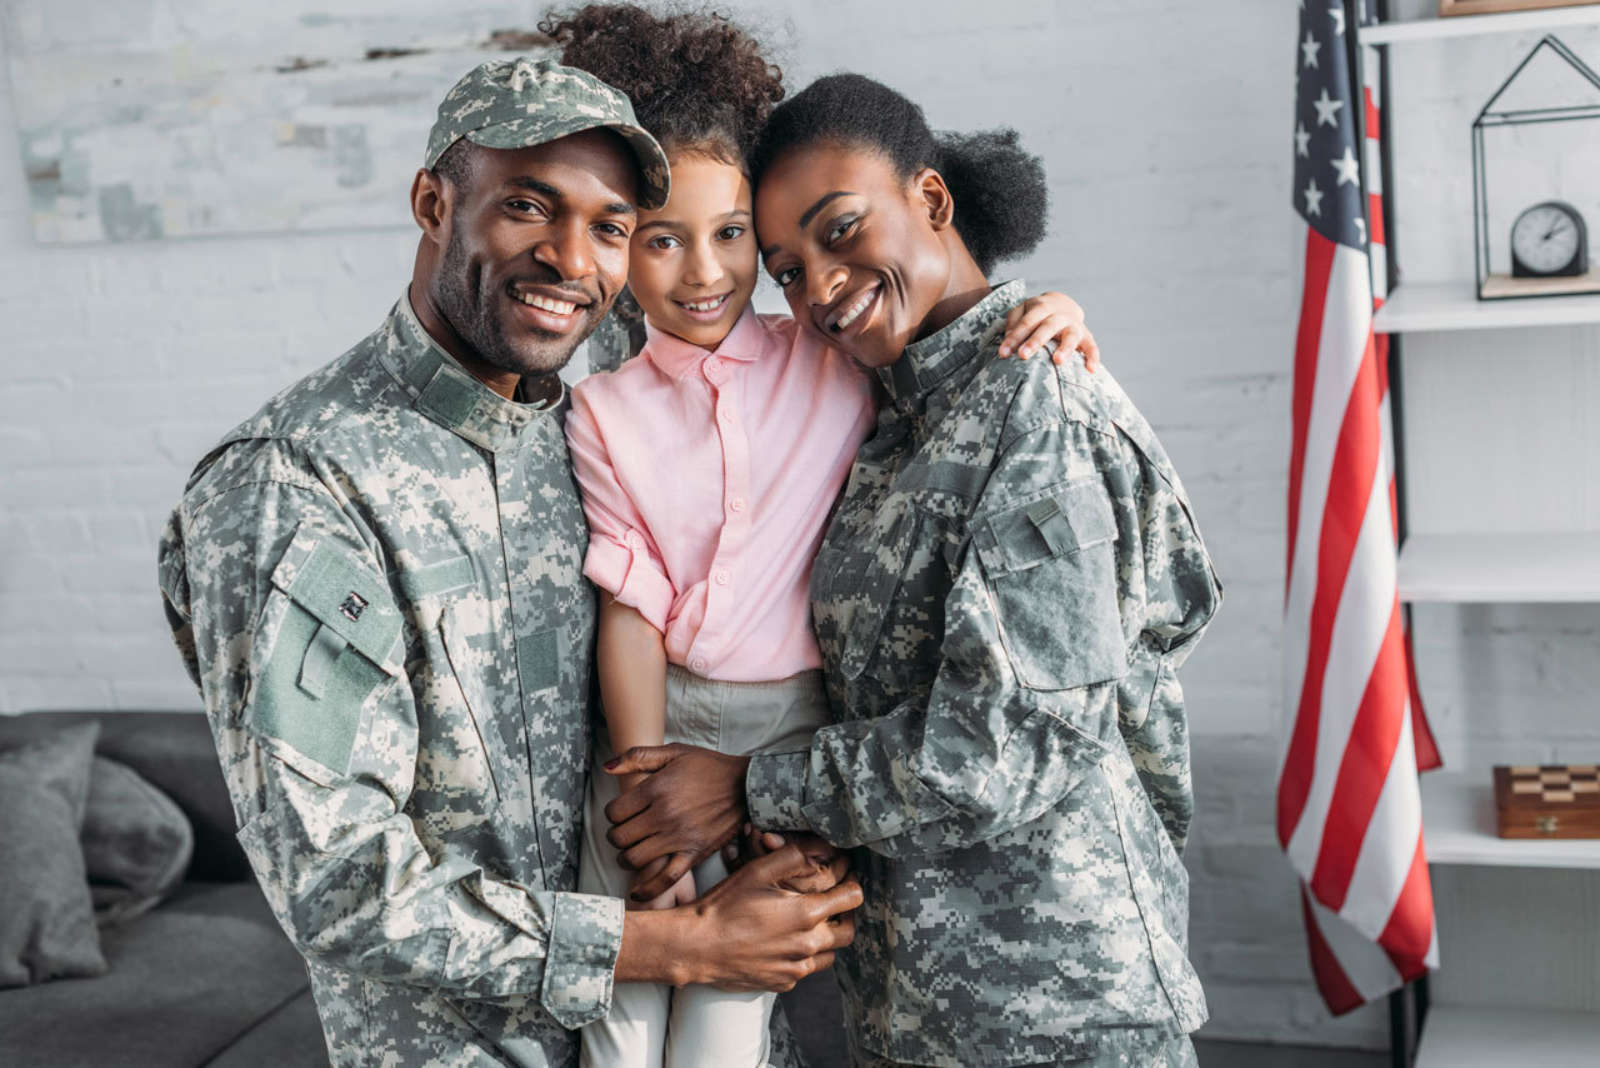 Military spouses family embracing daughter smiling hugging